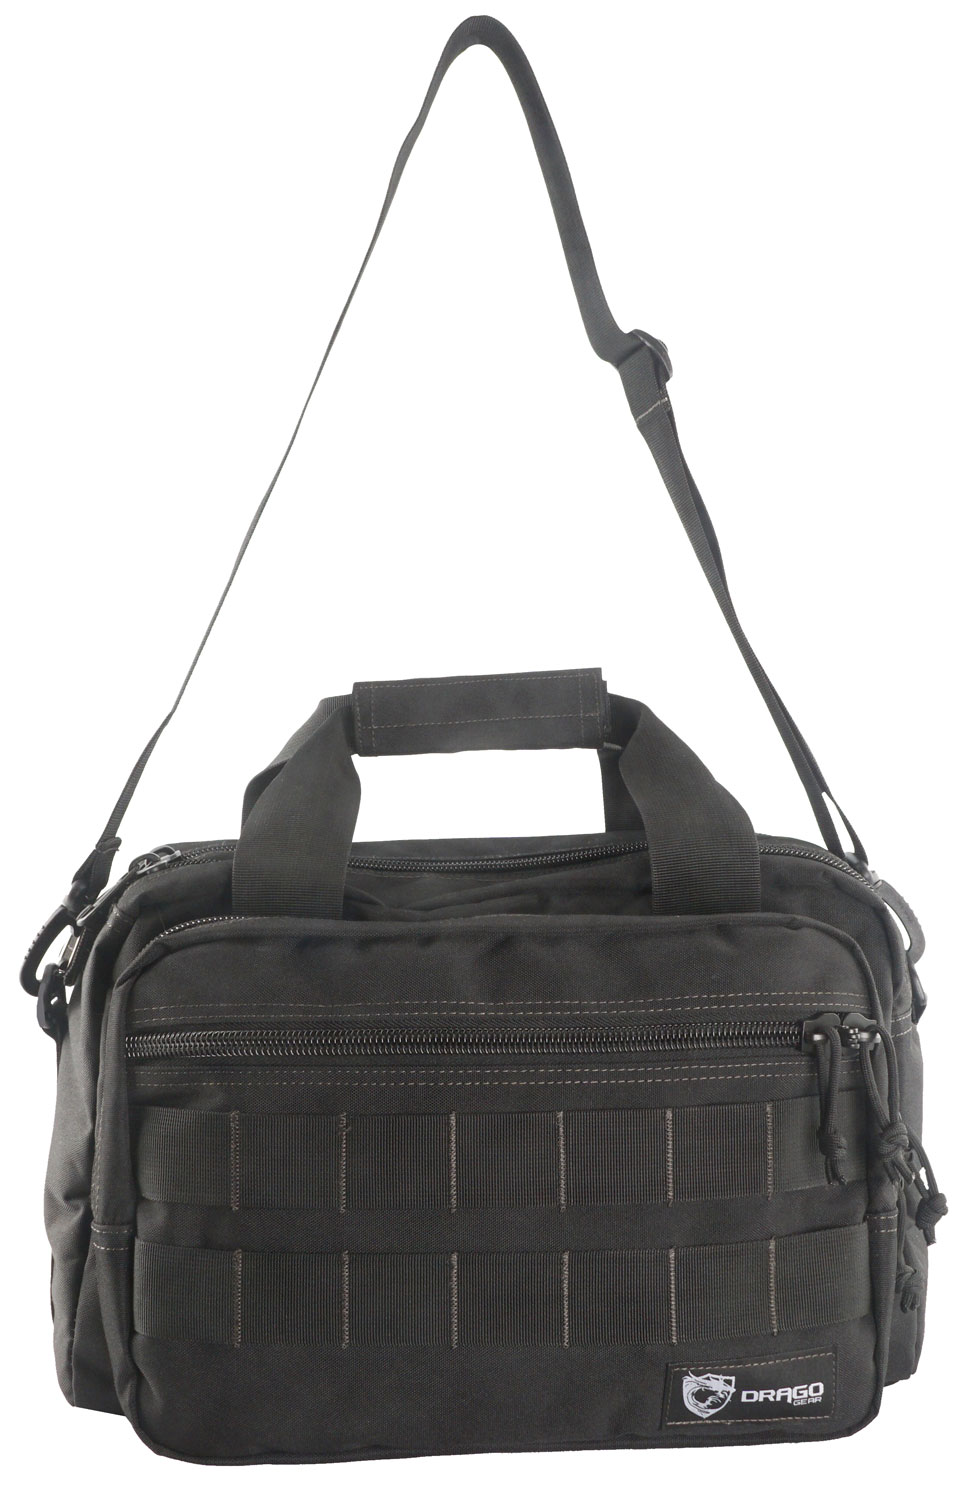 Drago Gear Pro Range Bag  <br>  Black